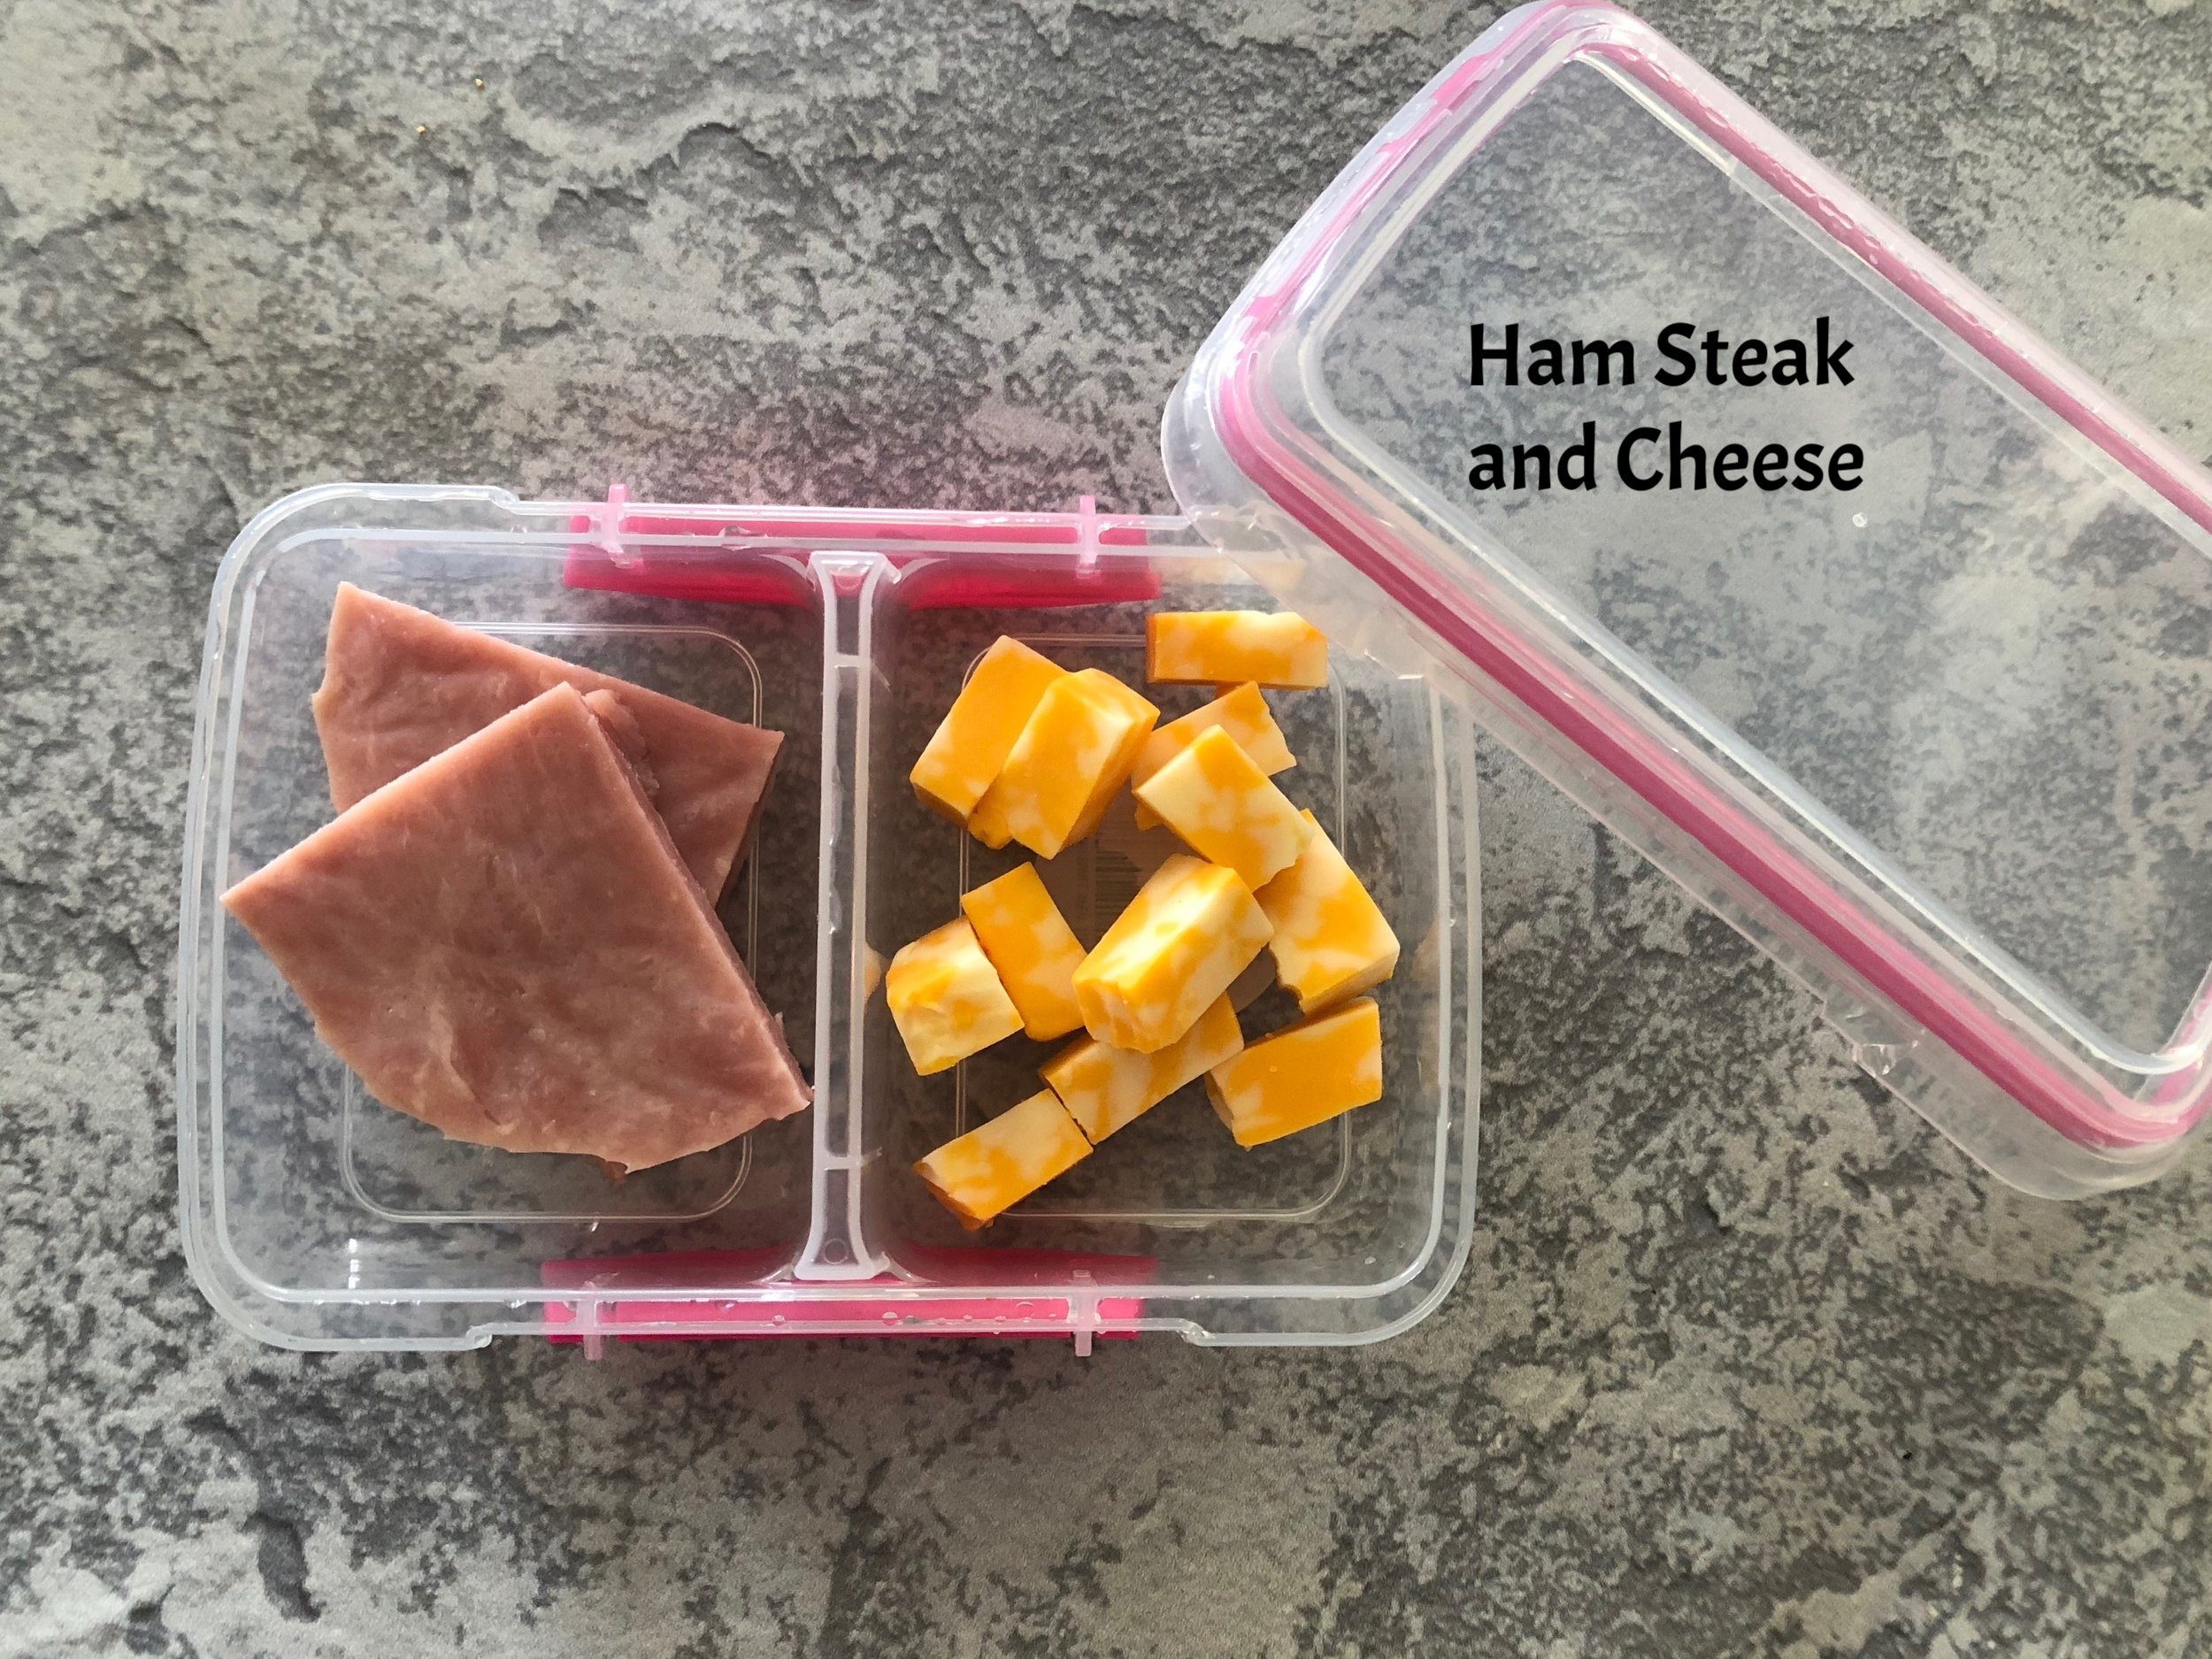 Lunch Ham Steak and Cheese Keto and Low Carb.jpg